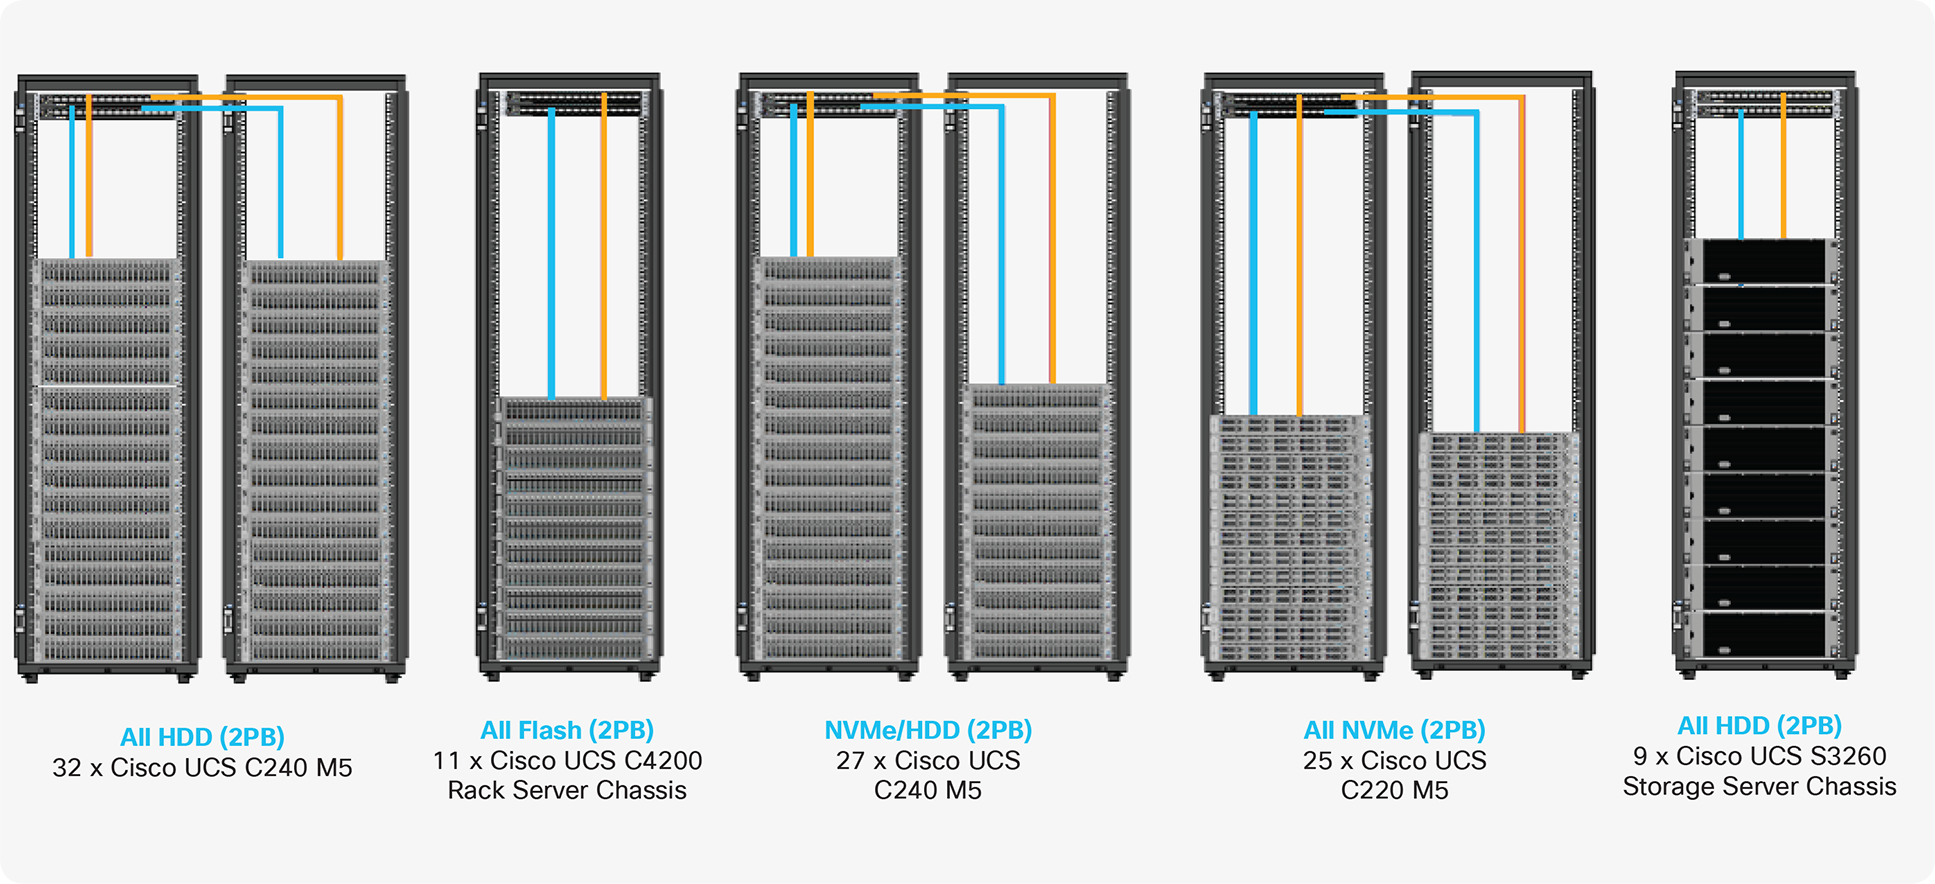 Cisco UCS Integrated Infrastructure for Big Data and Analytics – Modernize Hadoop